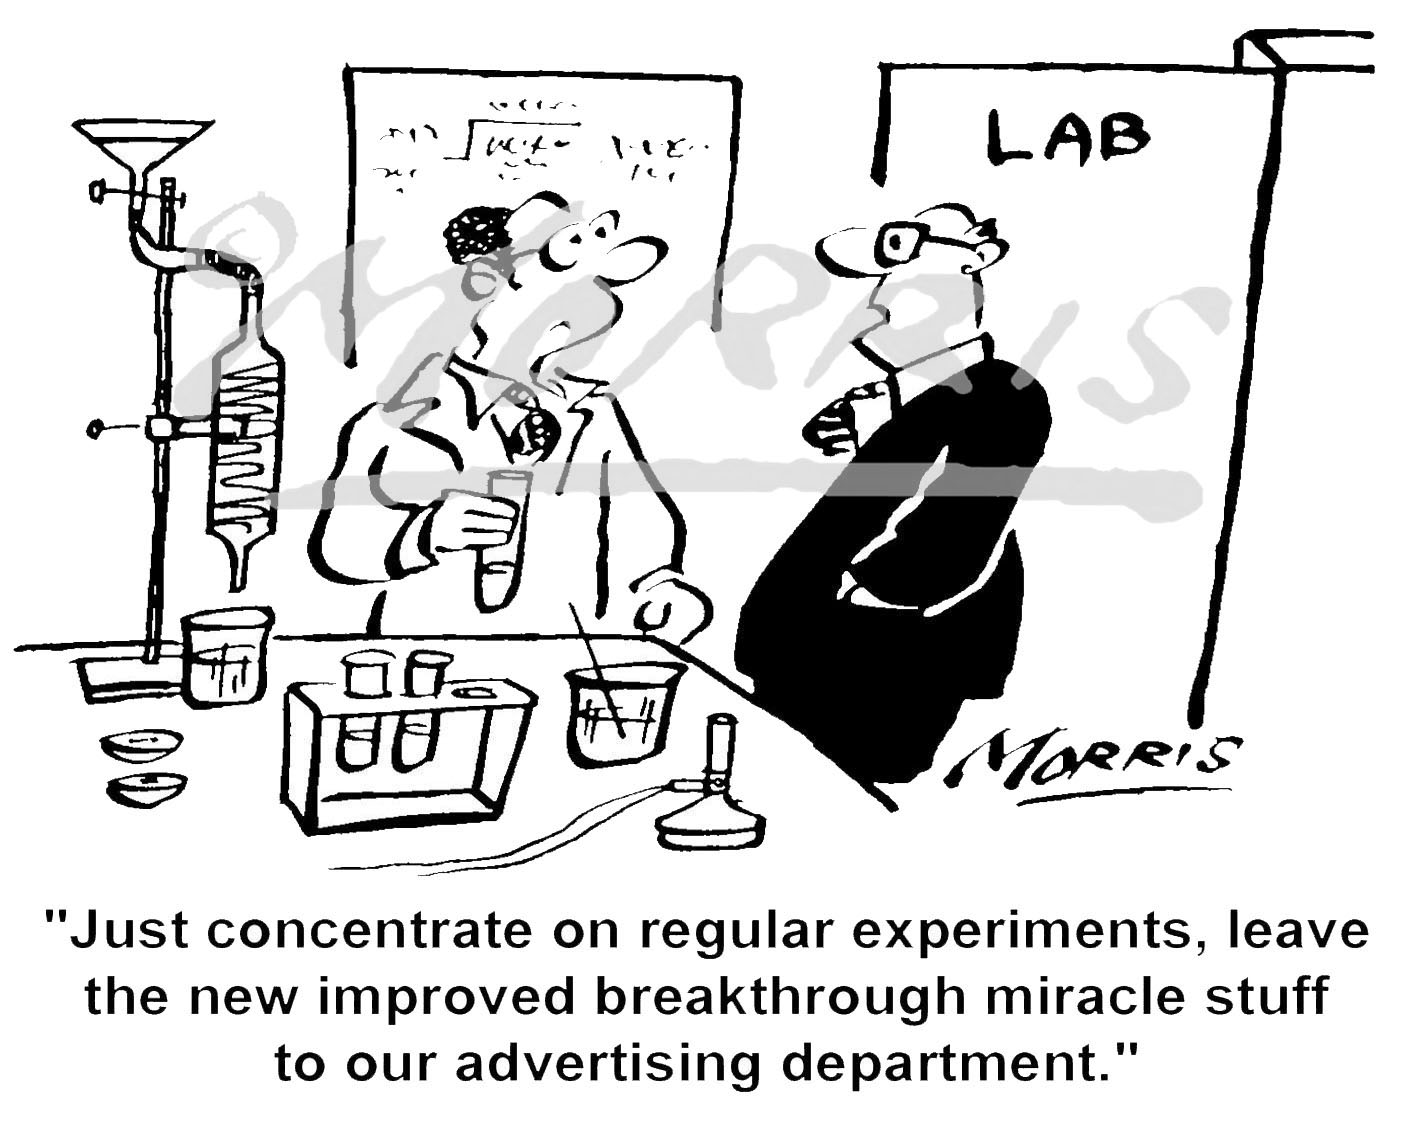 R&D cartoon, advertising cartoon Ref: 1654bw